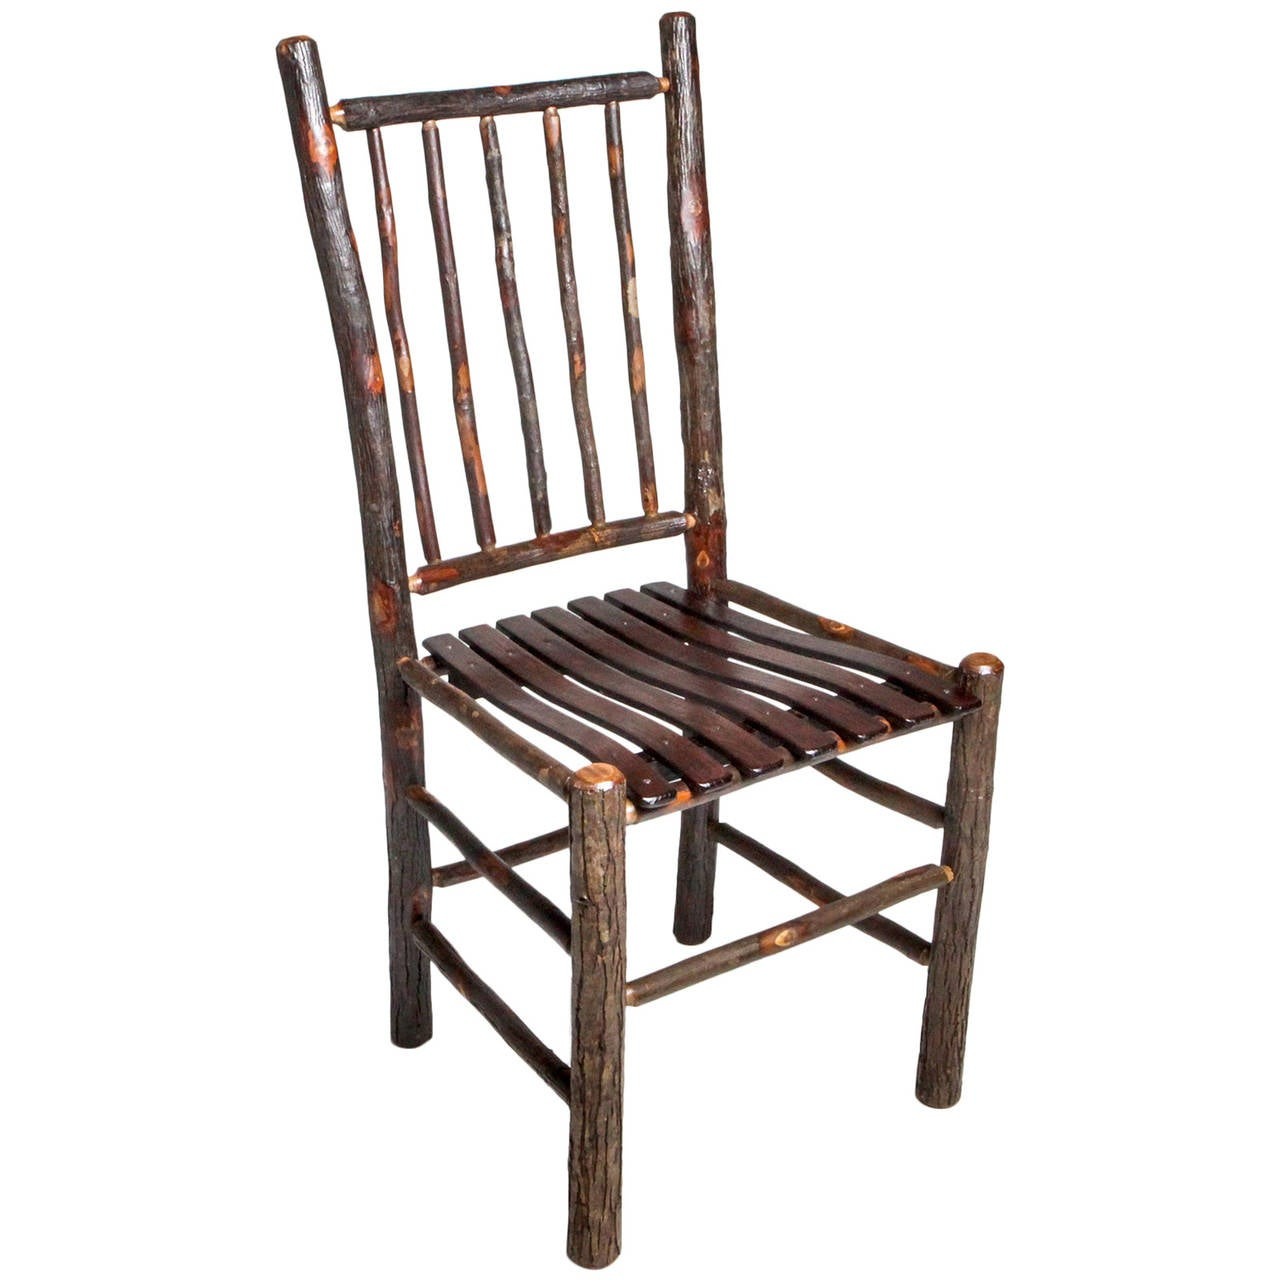 Chippendale Period Spindle Back Chair For Sale at 1stdibs